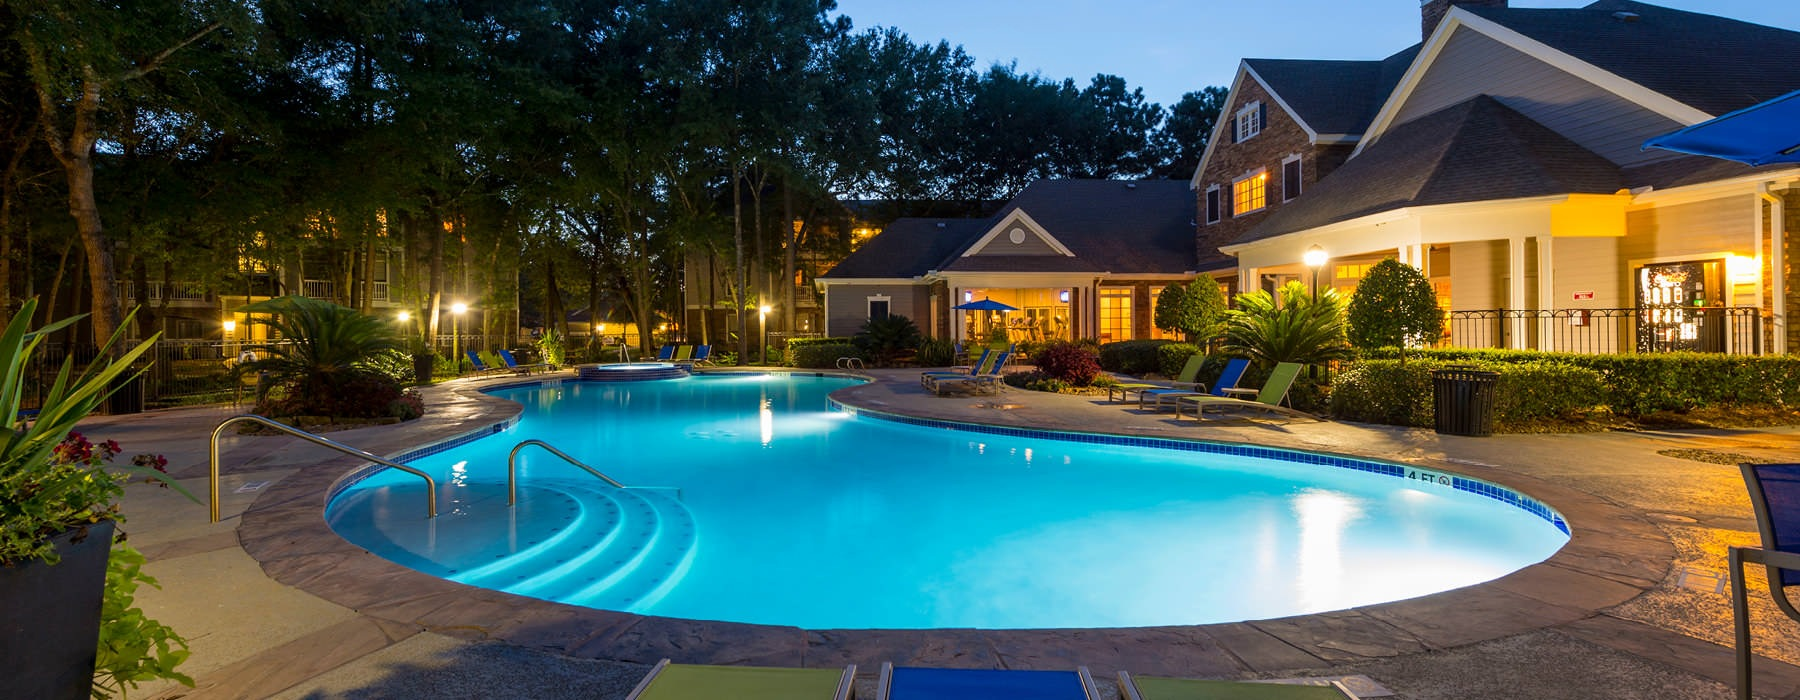 outdoor pool lit up for night time swimming